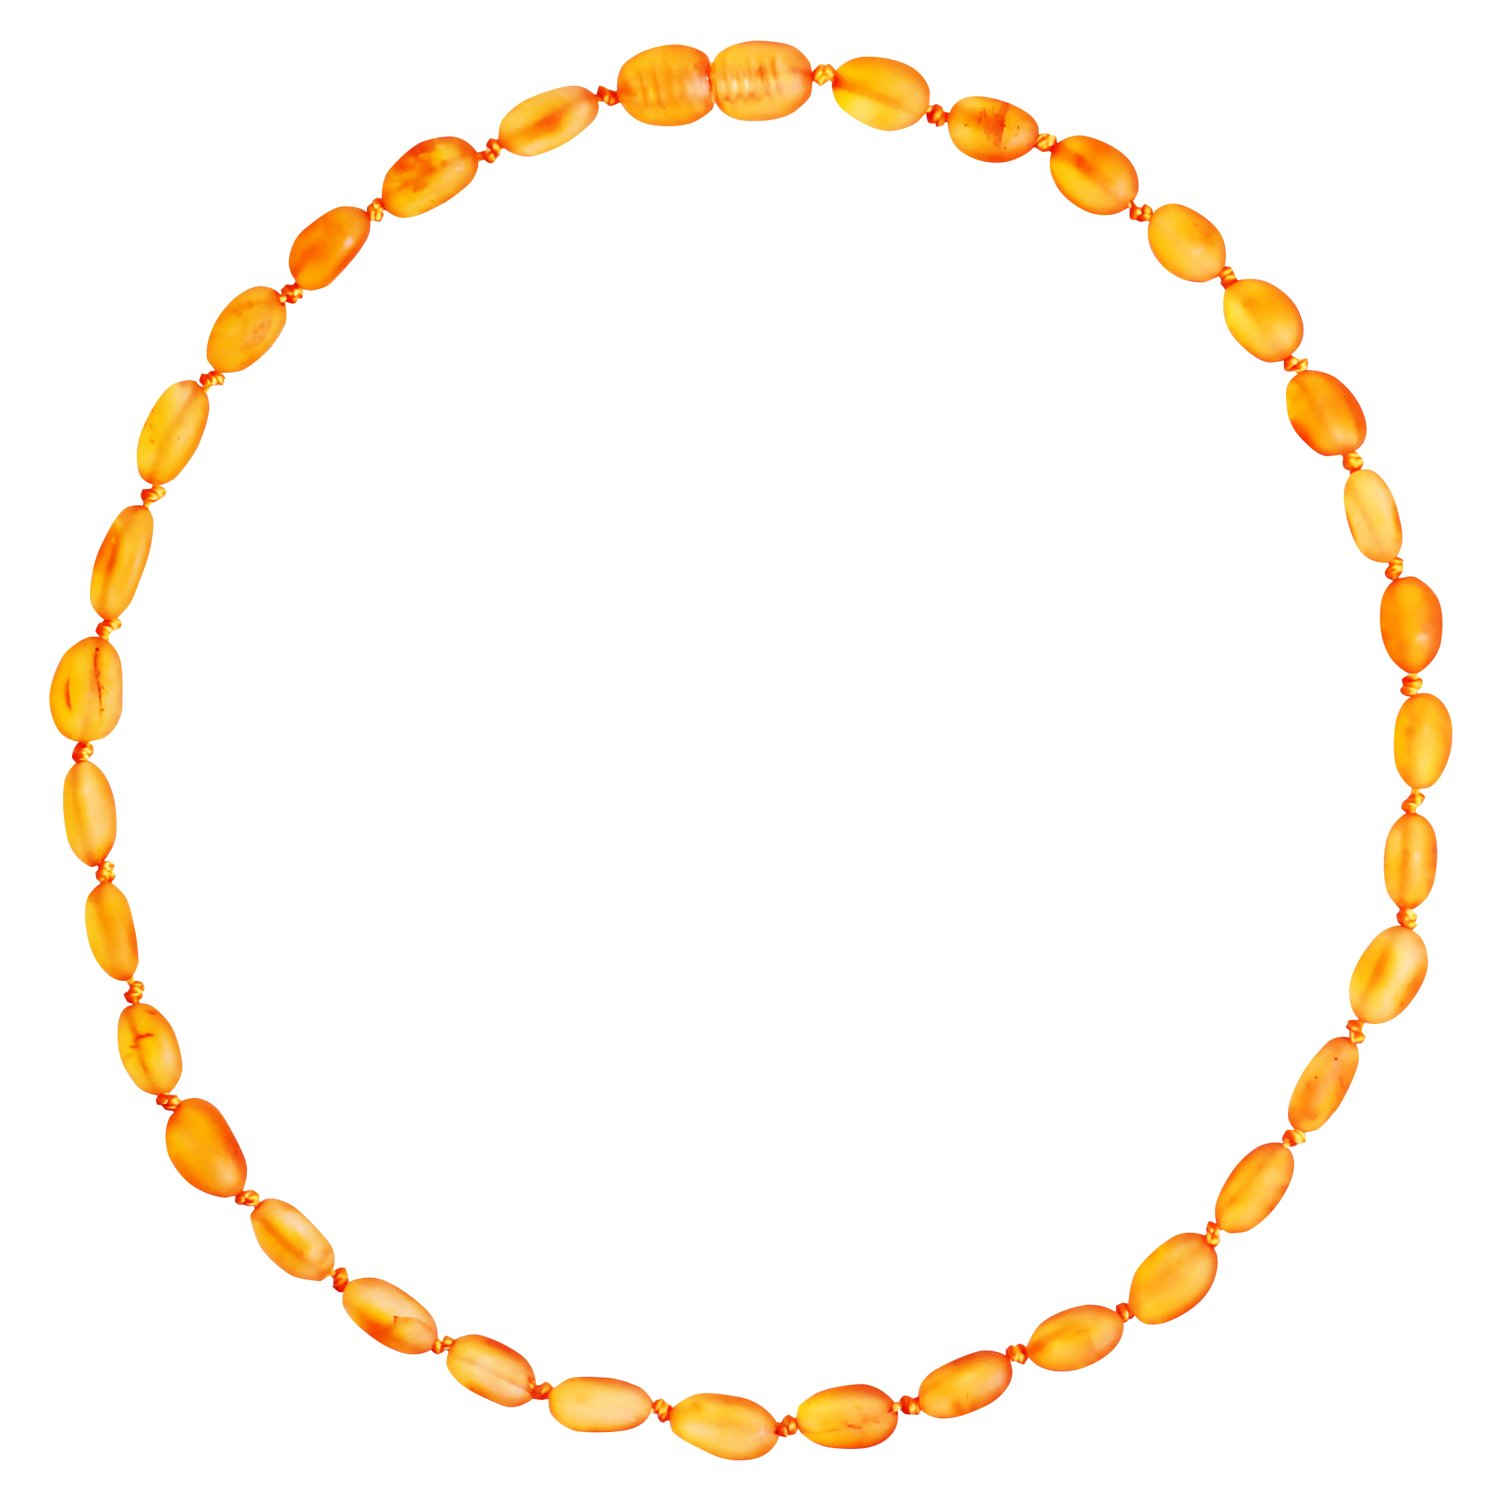 Authentic Amber Teething Necklace for Toddler Baby (Unisex – Raw Honey – 12.5 Inches), Unpolished Baltic Amber Teething Necklace – Natural remedy of inflammation, drool, molar& fussiness for Infant